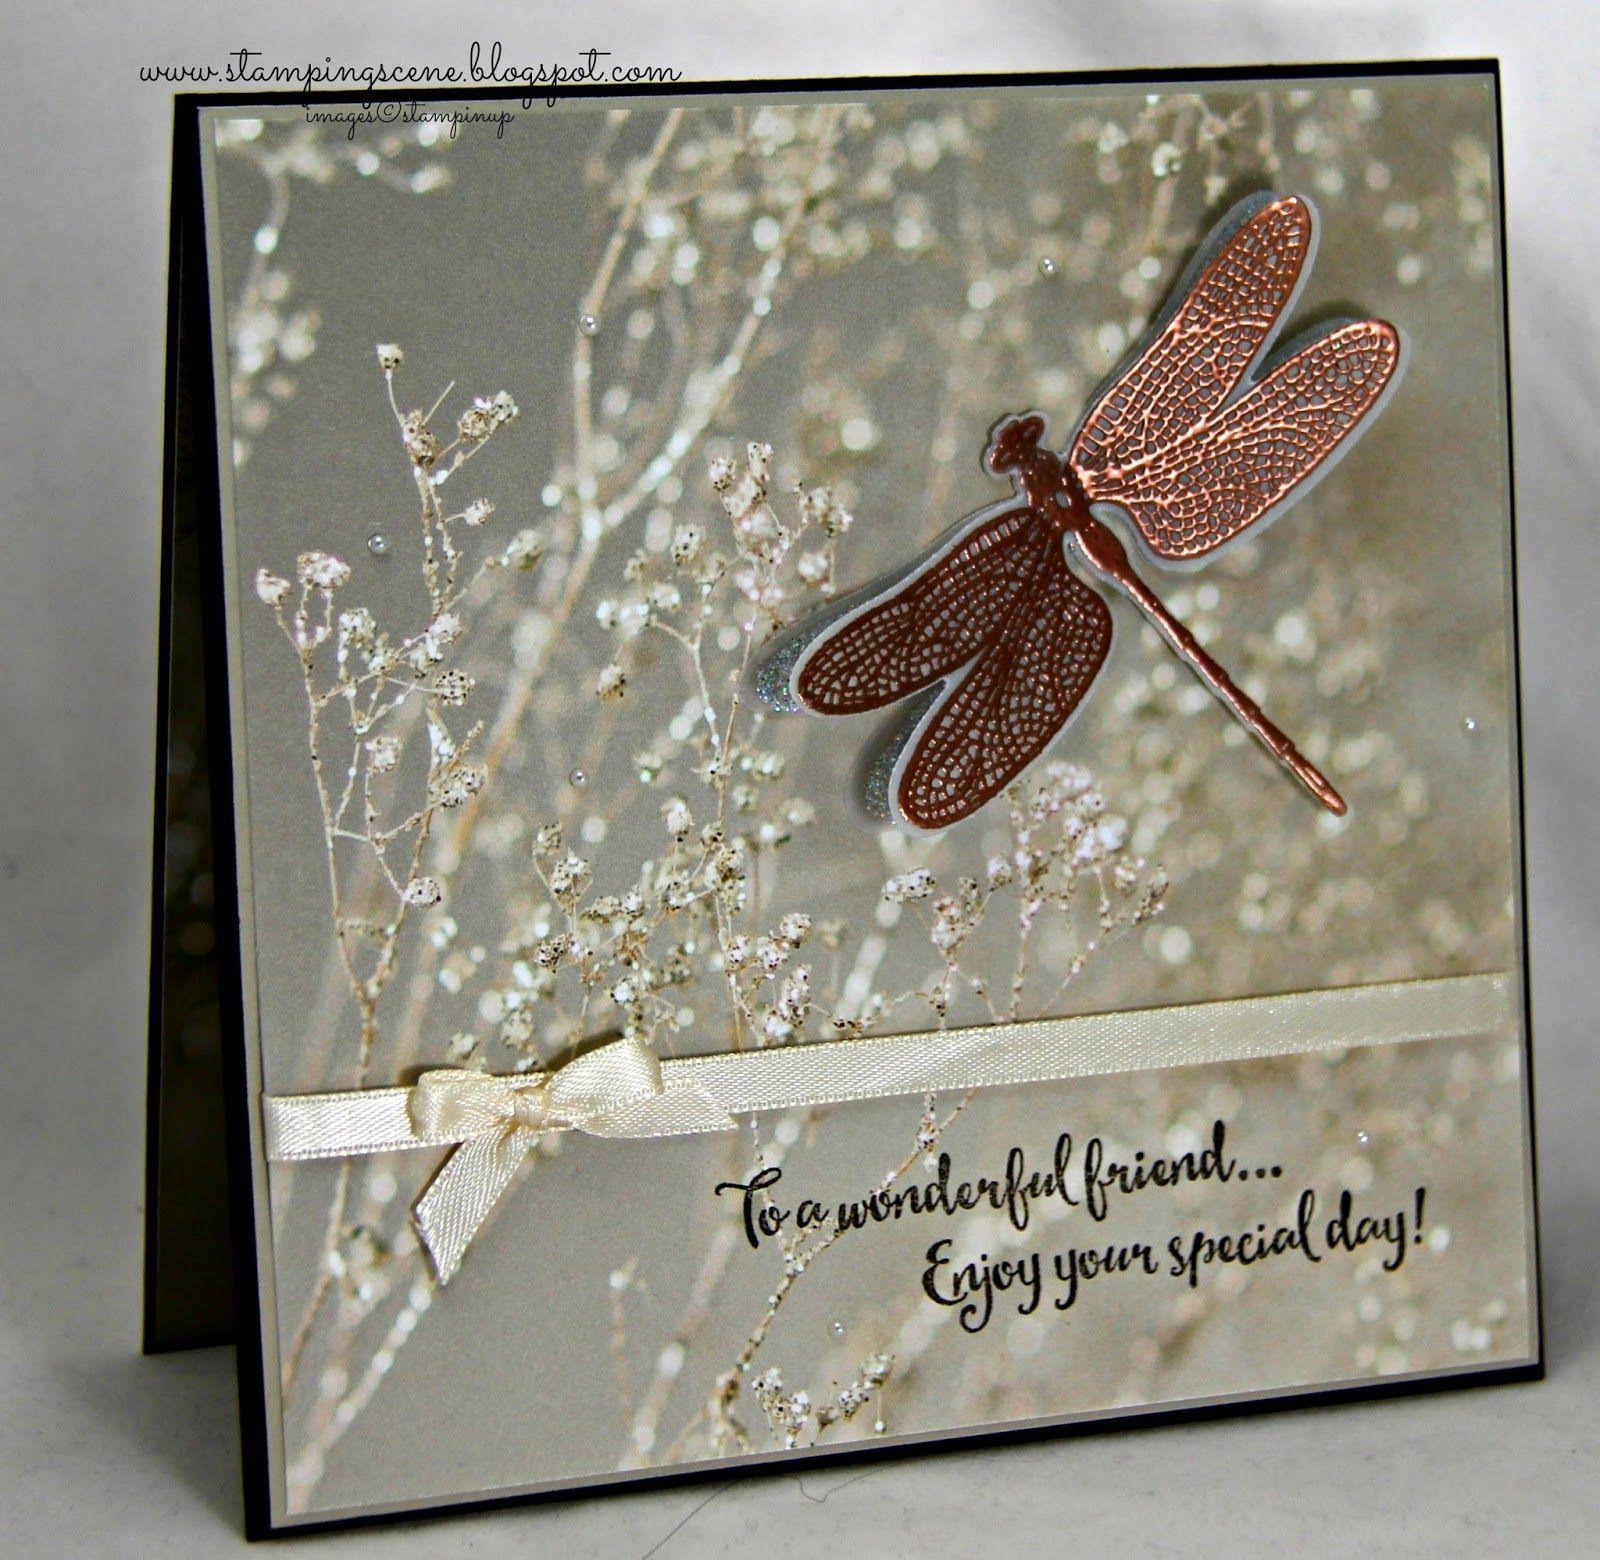 Stampin up incentive trip achiever blog hop dragonfly dreams shop paper craft supplies stampin up incentive trip achiever blog hop dragonfly dreams shop stampin up uk online jeuxipadfo Gallery